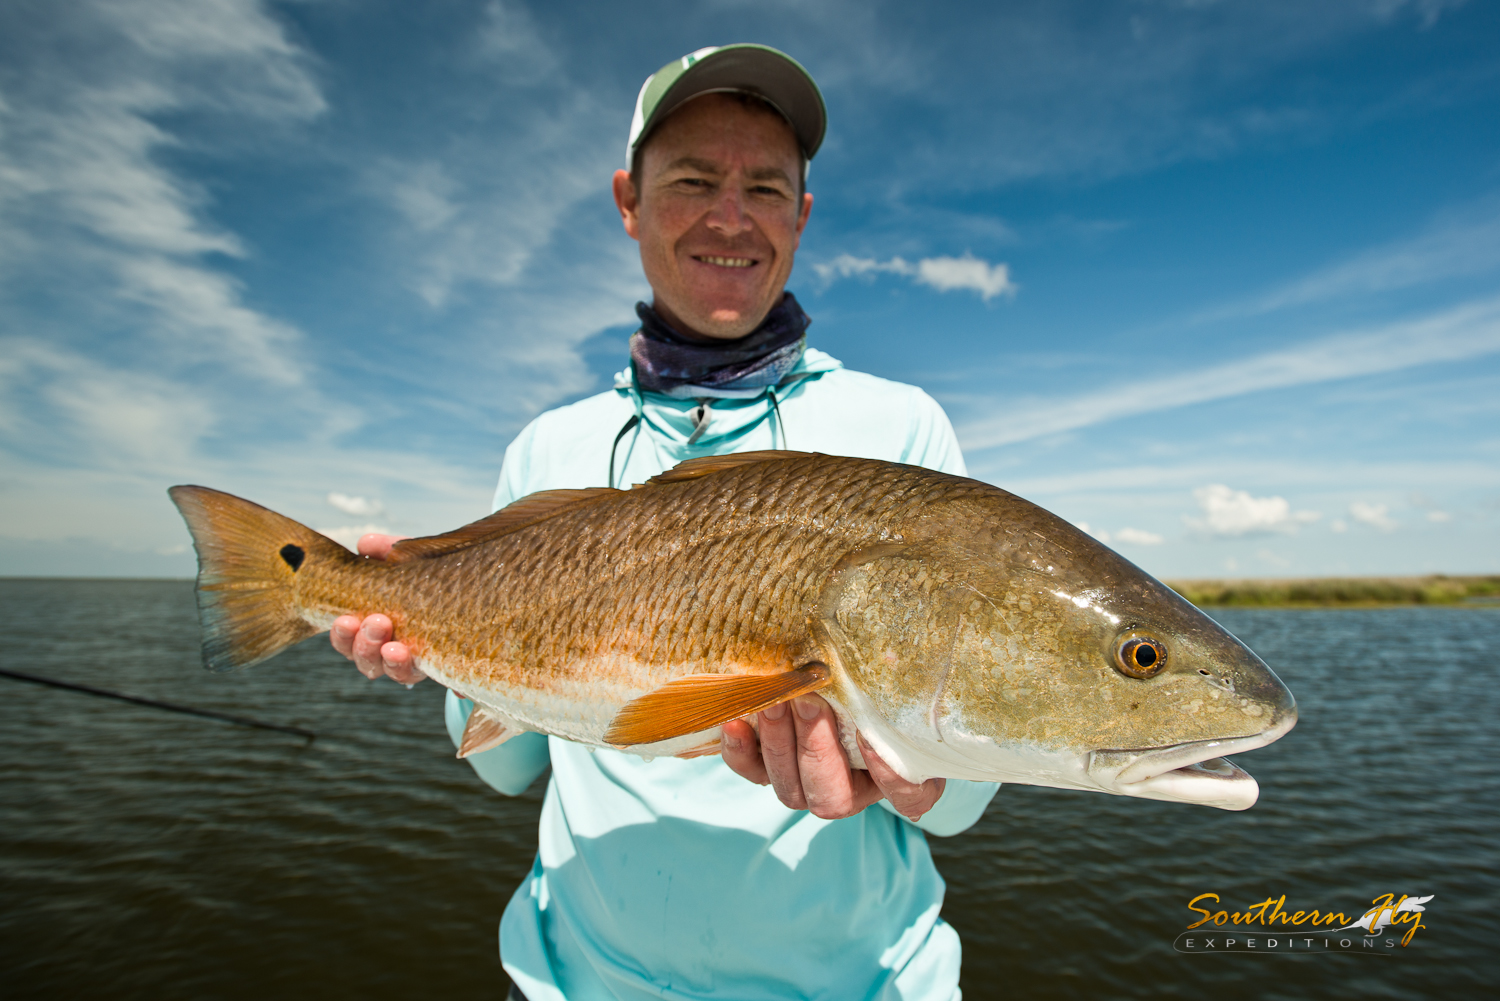 Massachusetts Anglers Fly Fishing New Orleans with Southern Fly Expeditions